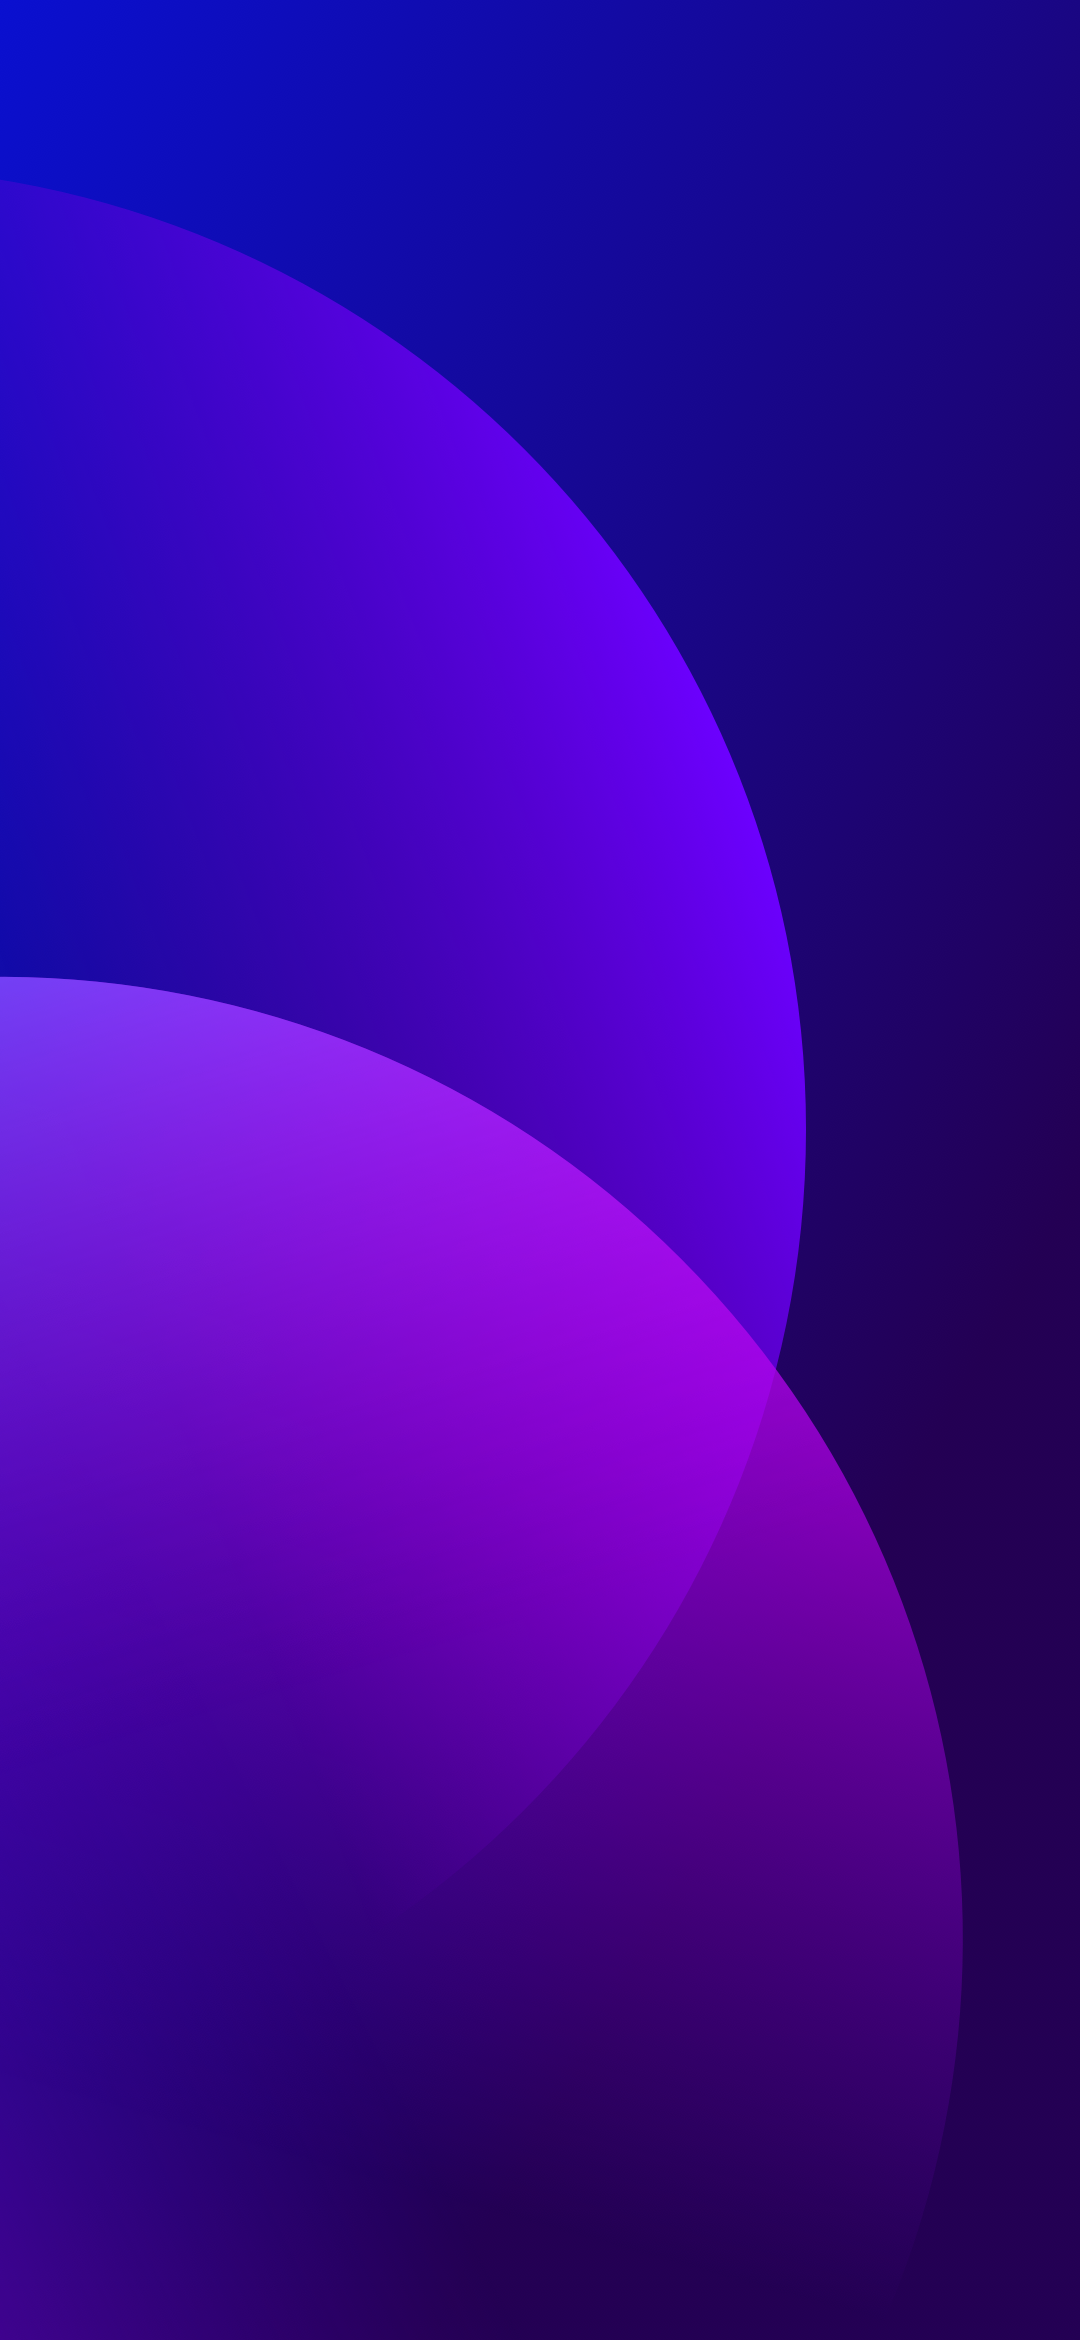 Oppo F11 Pro Wallpaper Ytechb Exclusive Oneplus Wallpapers Hd Phone Wallpapers Hd Wallpaper Iphone